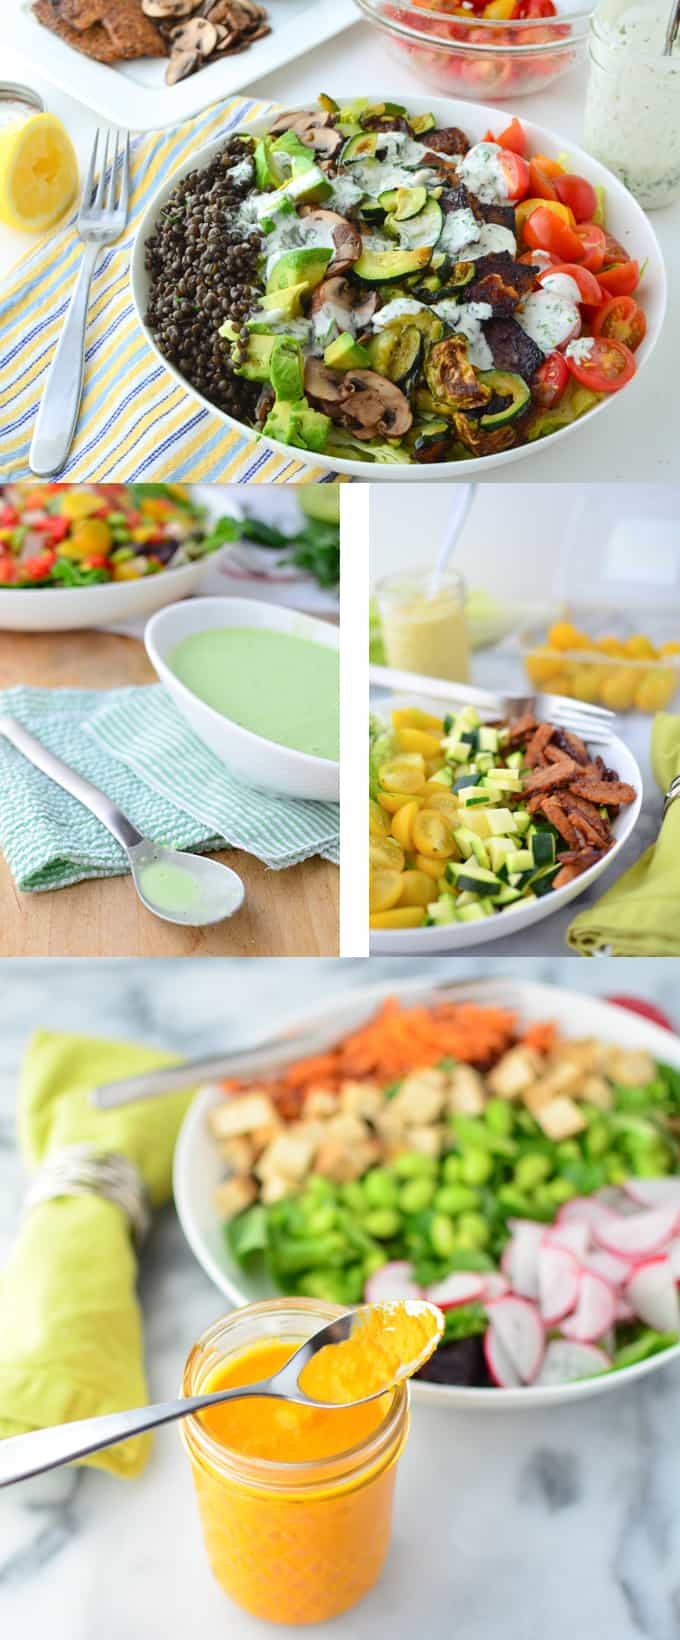 Low Fat Salad Recipes  Low Fat Salad Dressings Strip And Fuck Games